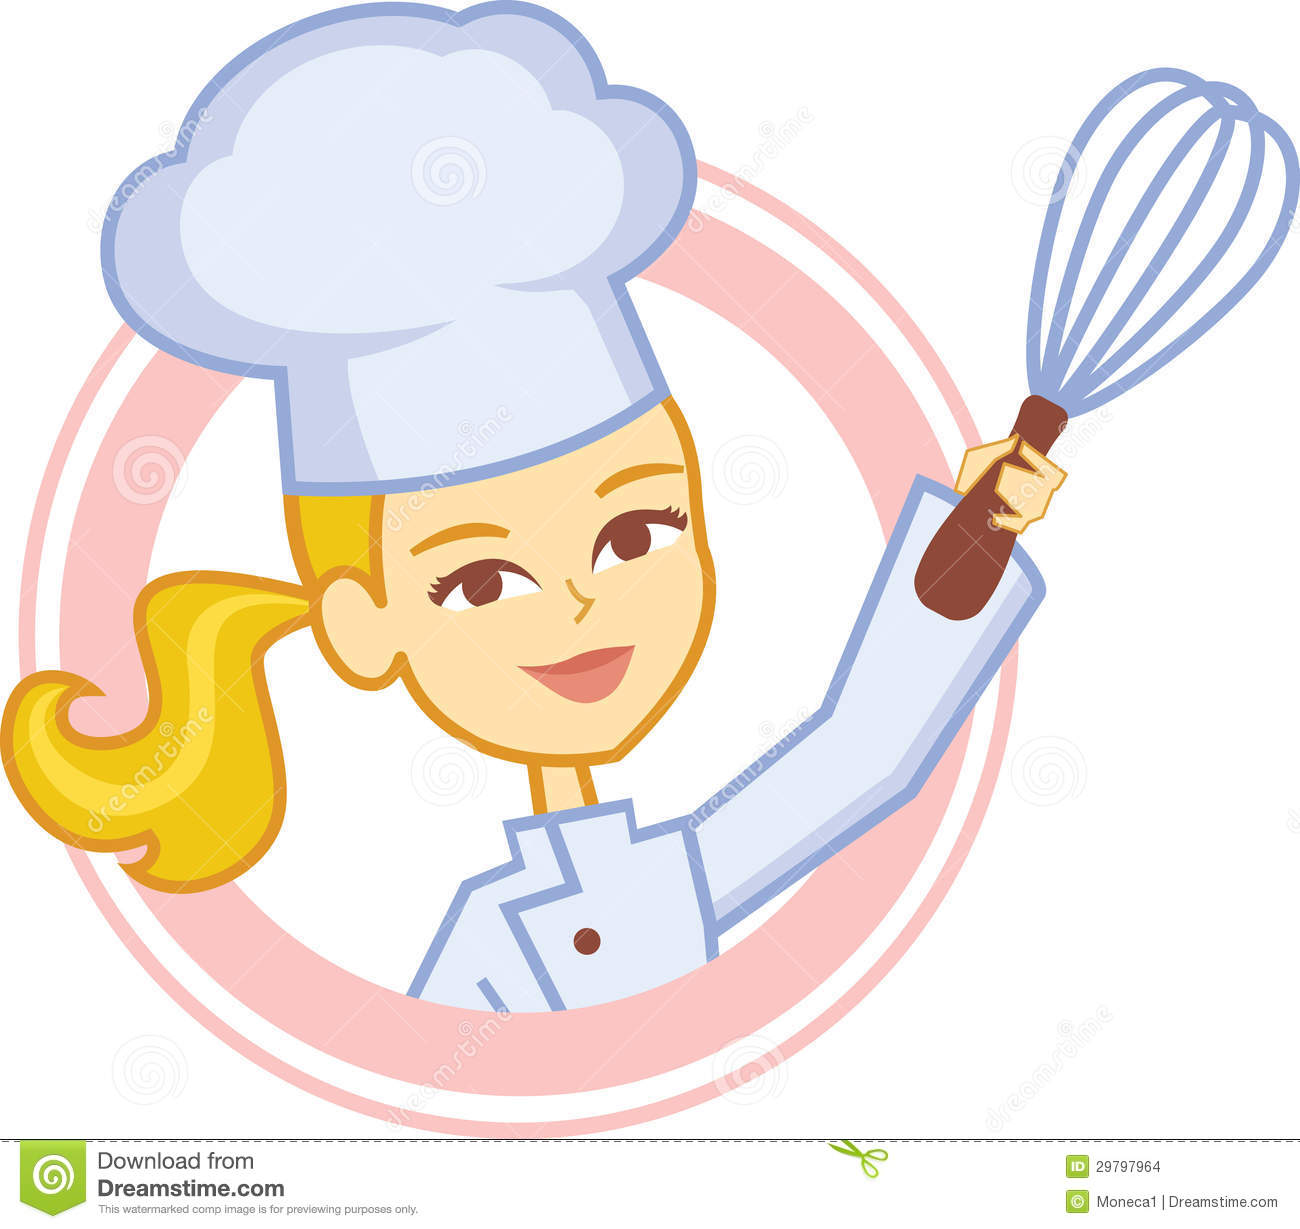 Blonde boy chef clipart png freeuse download Blonde boy chef clipart - ClipartFest png freeuse download